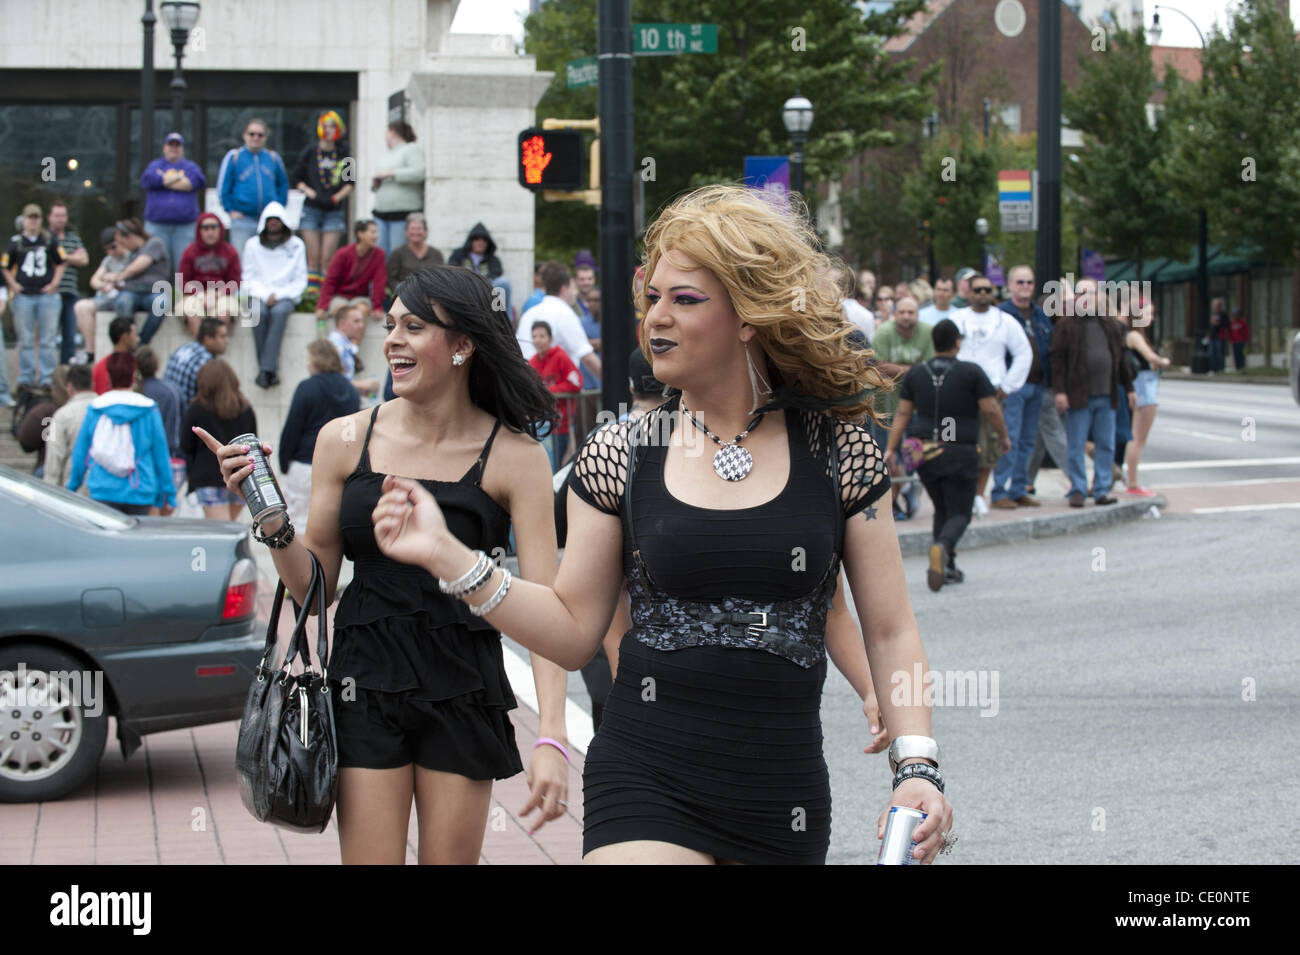 from Dalton atlanta gay pride 2011